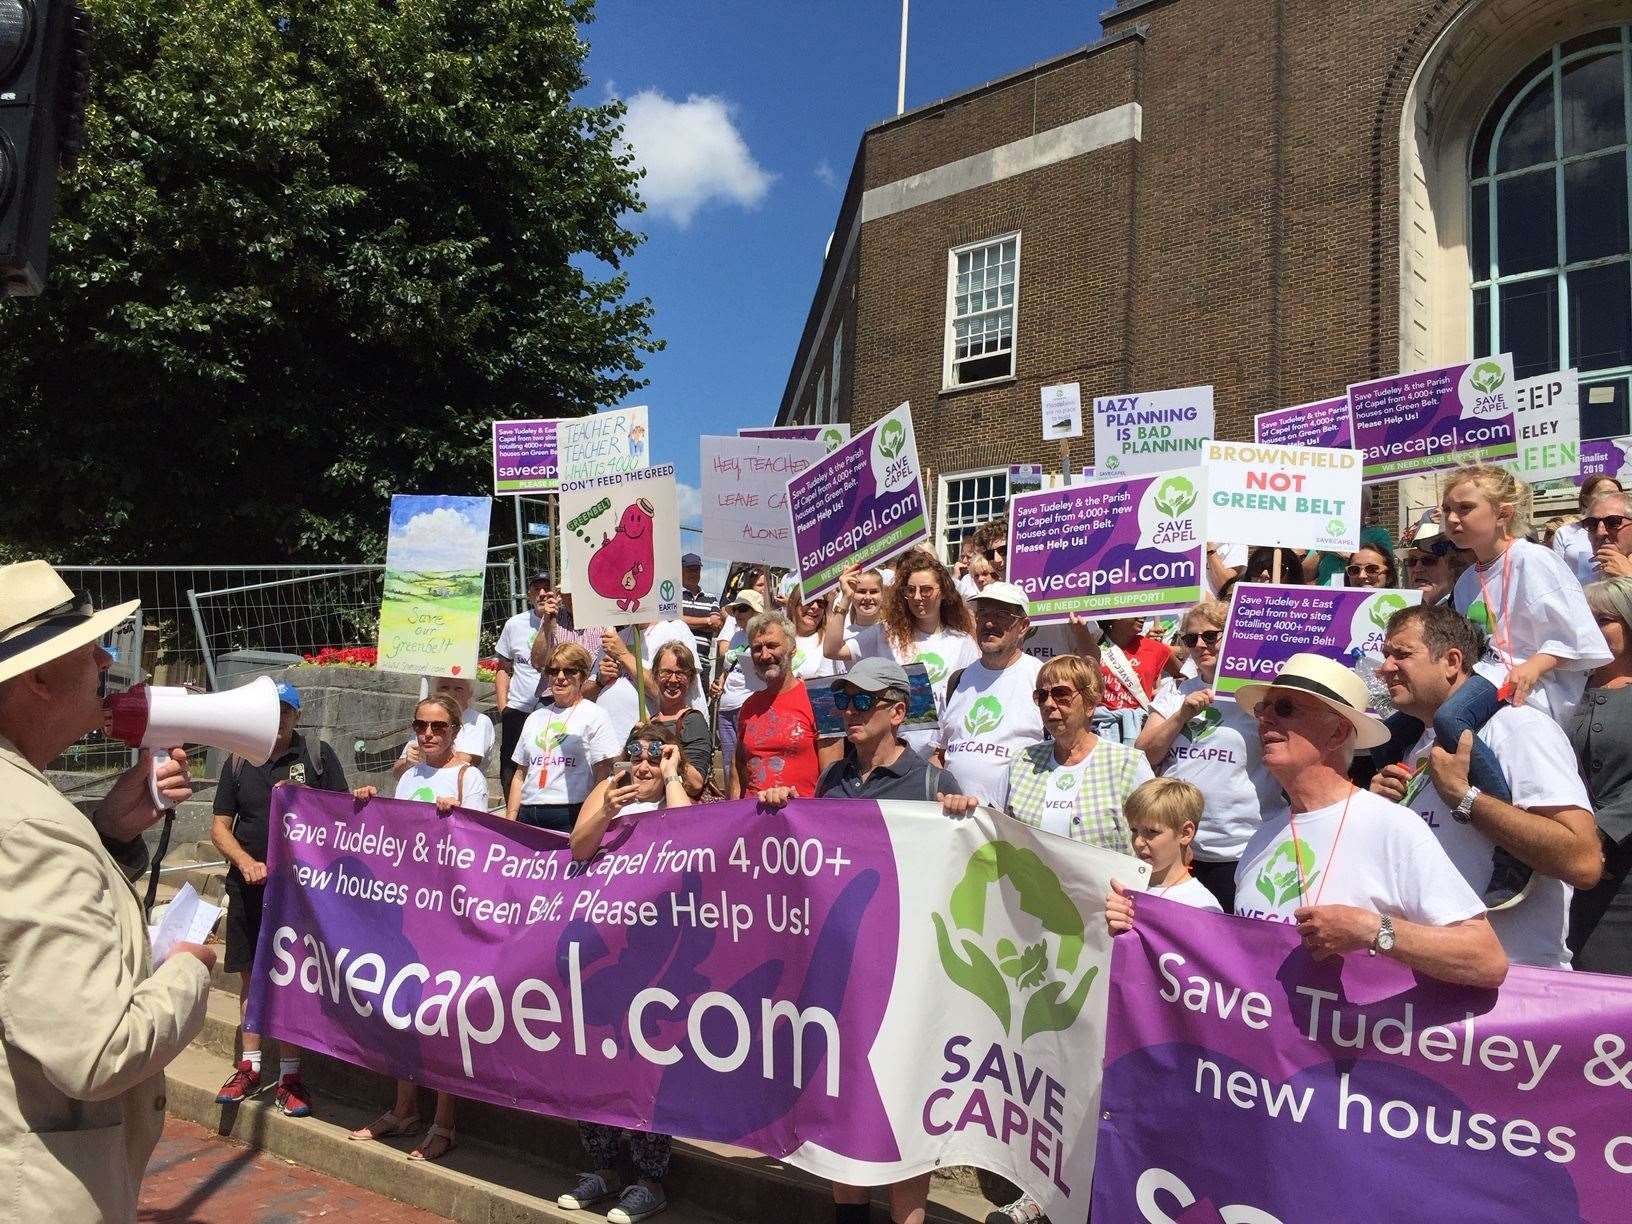 Save Capel protest outside Tunbridge Wells Town Hall